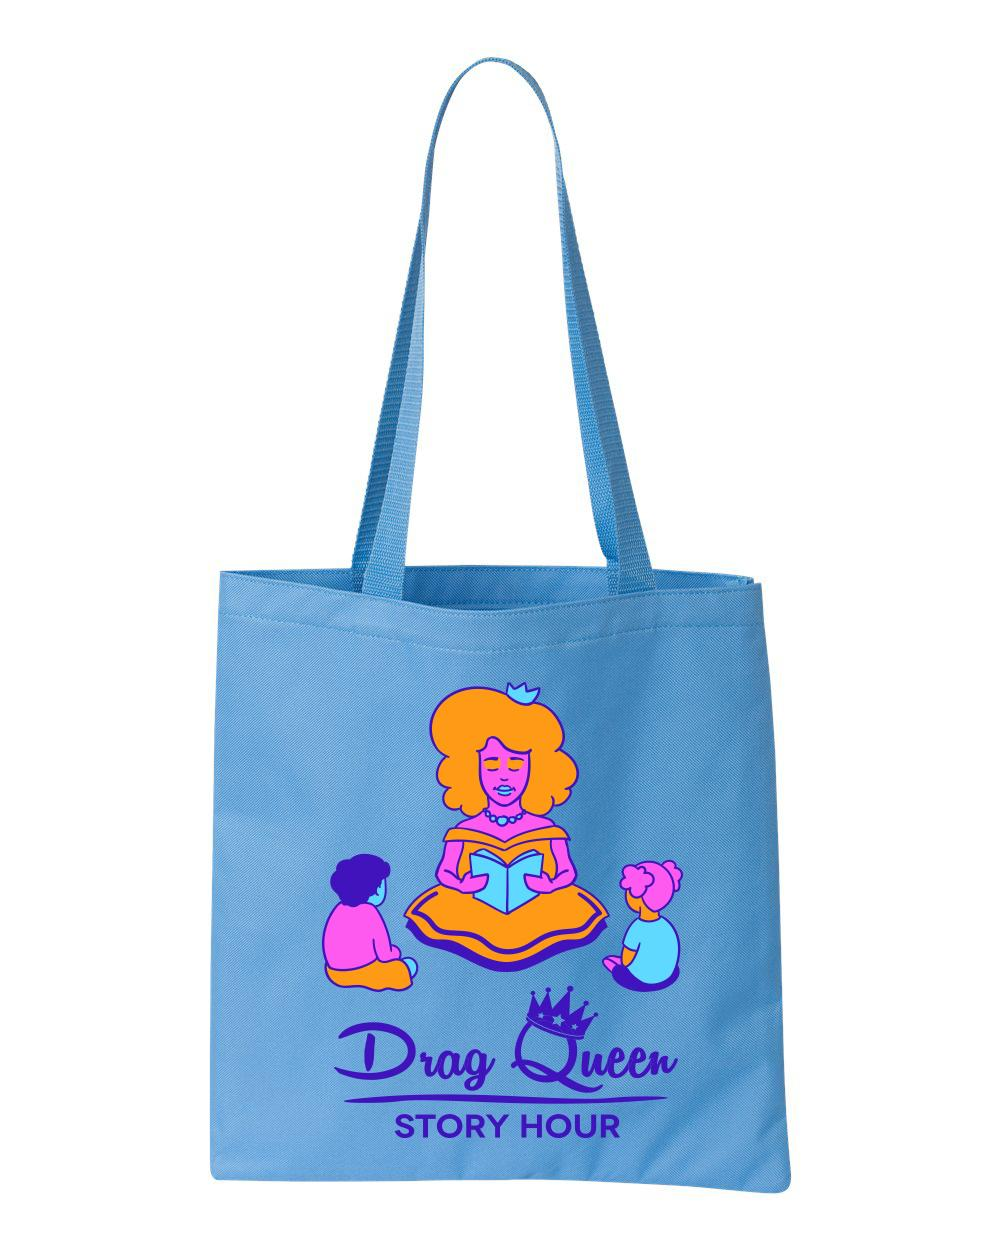 Drag Queen Story Hour tote bag in light blue